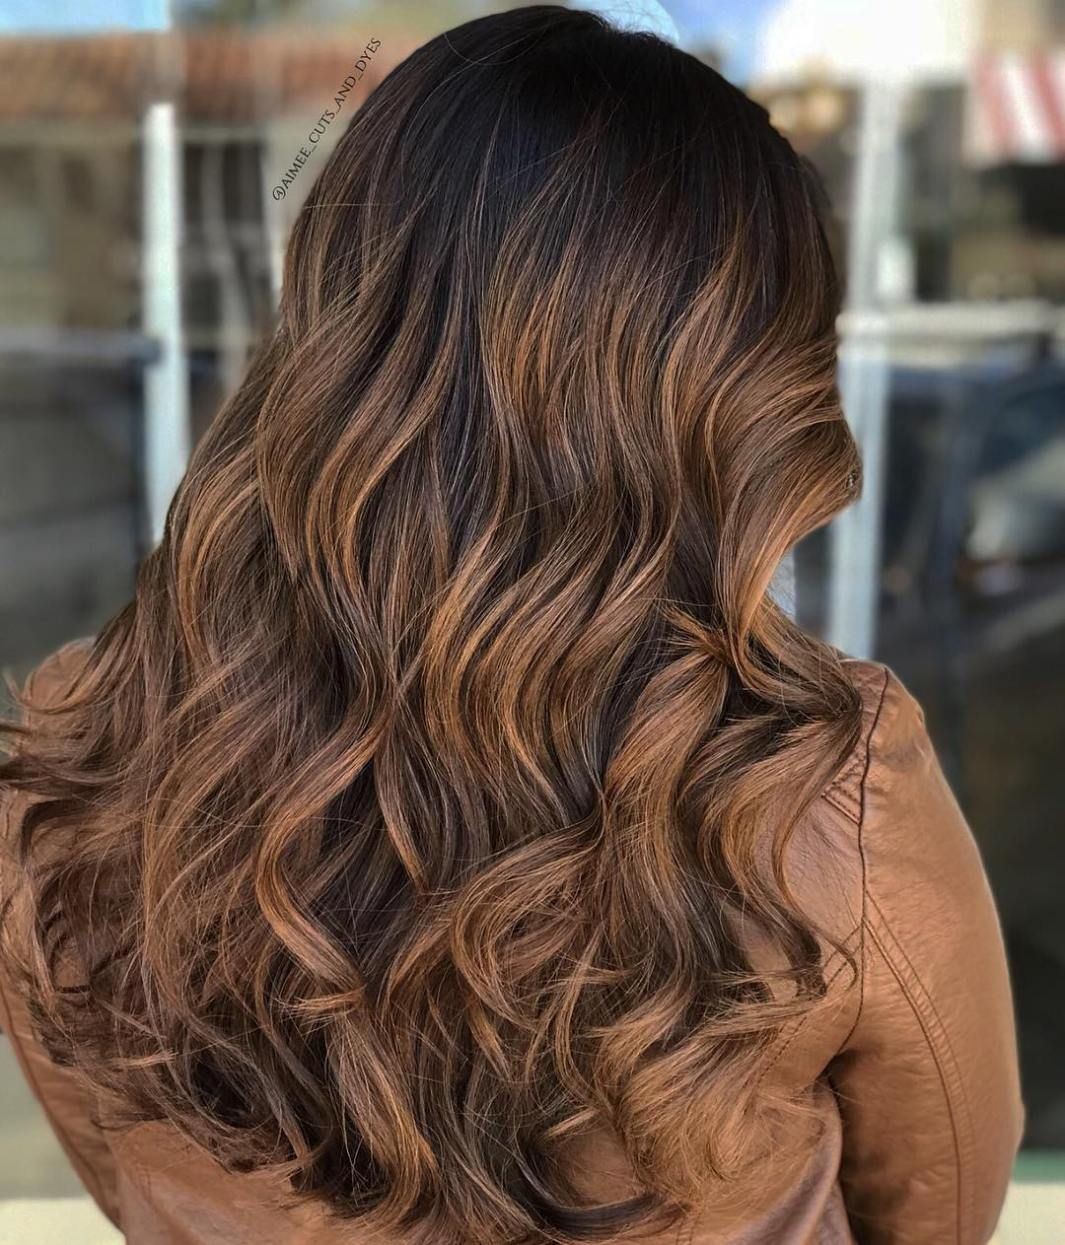 60 Looks With Caramel Highlights On Brown And Dark Brown Hair Fall Hair Color For Brunettes Brunette Hair Color Hair Color Caramel